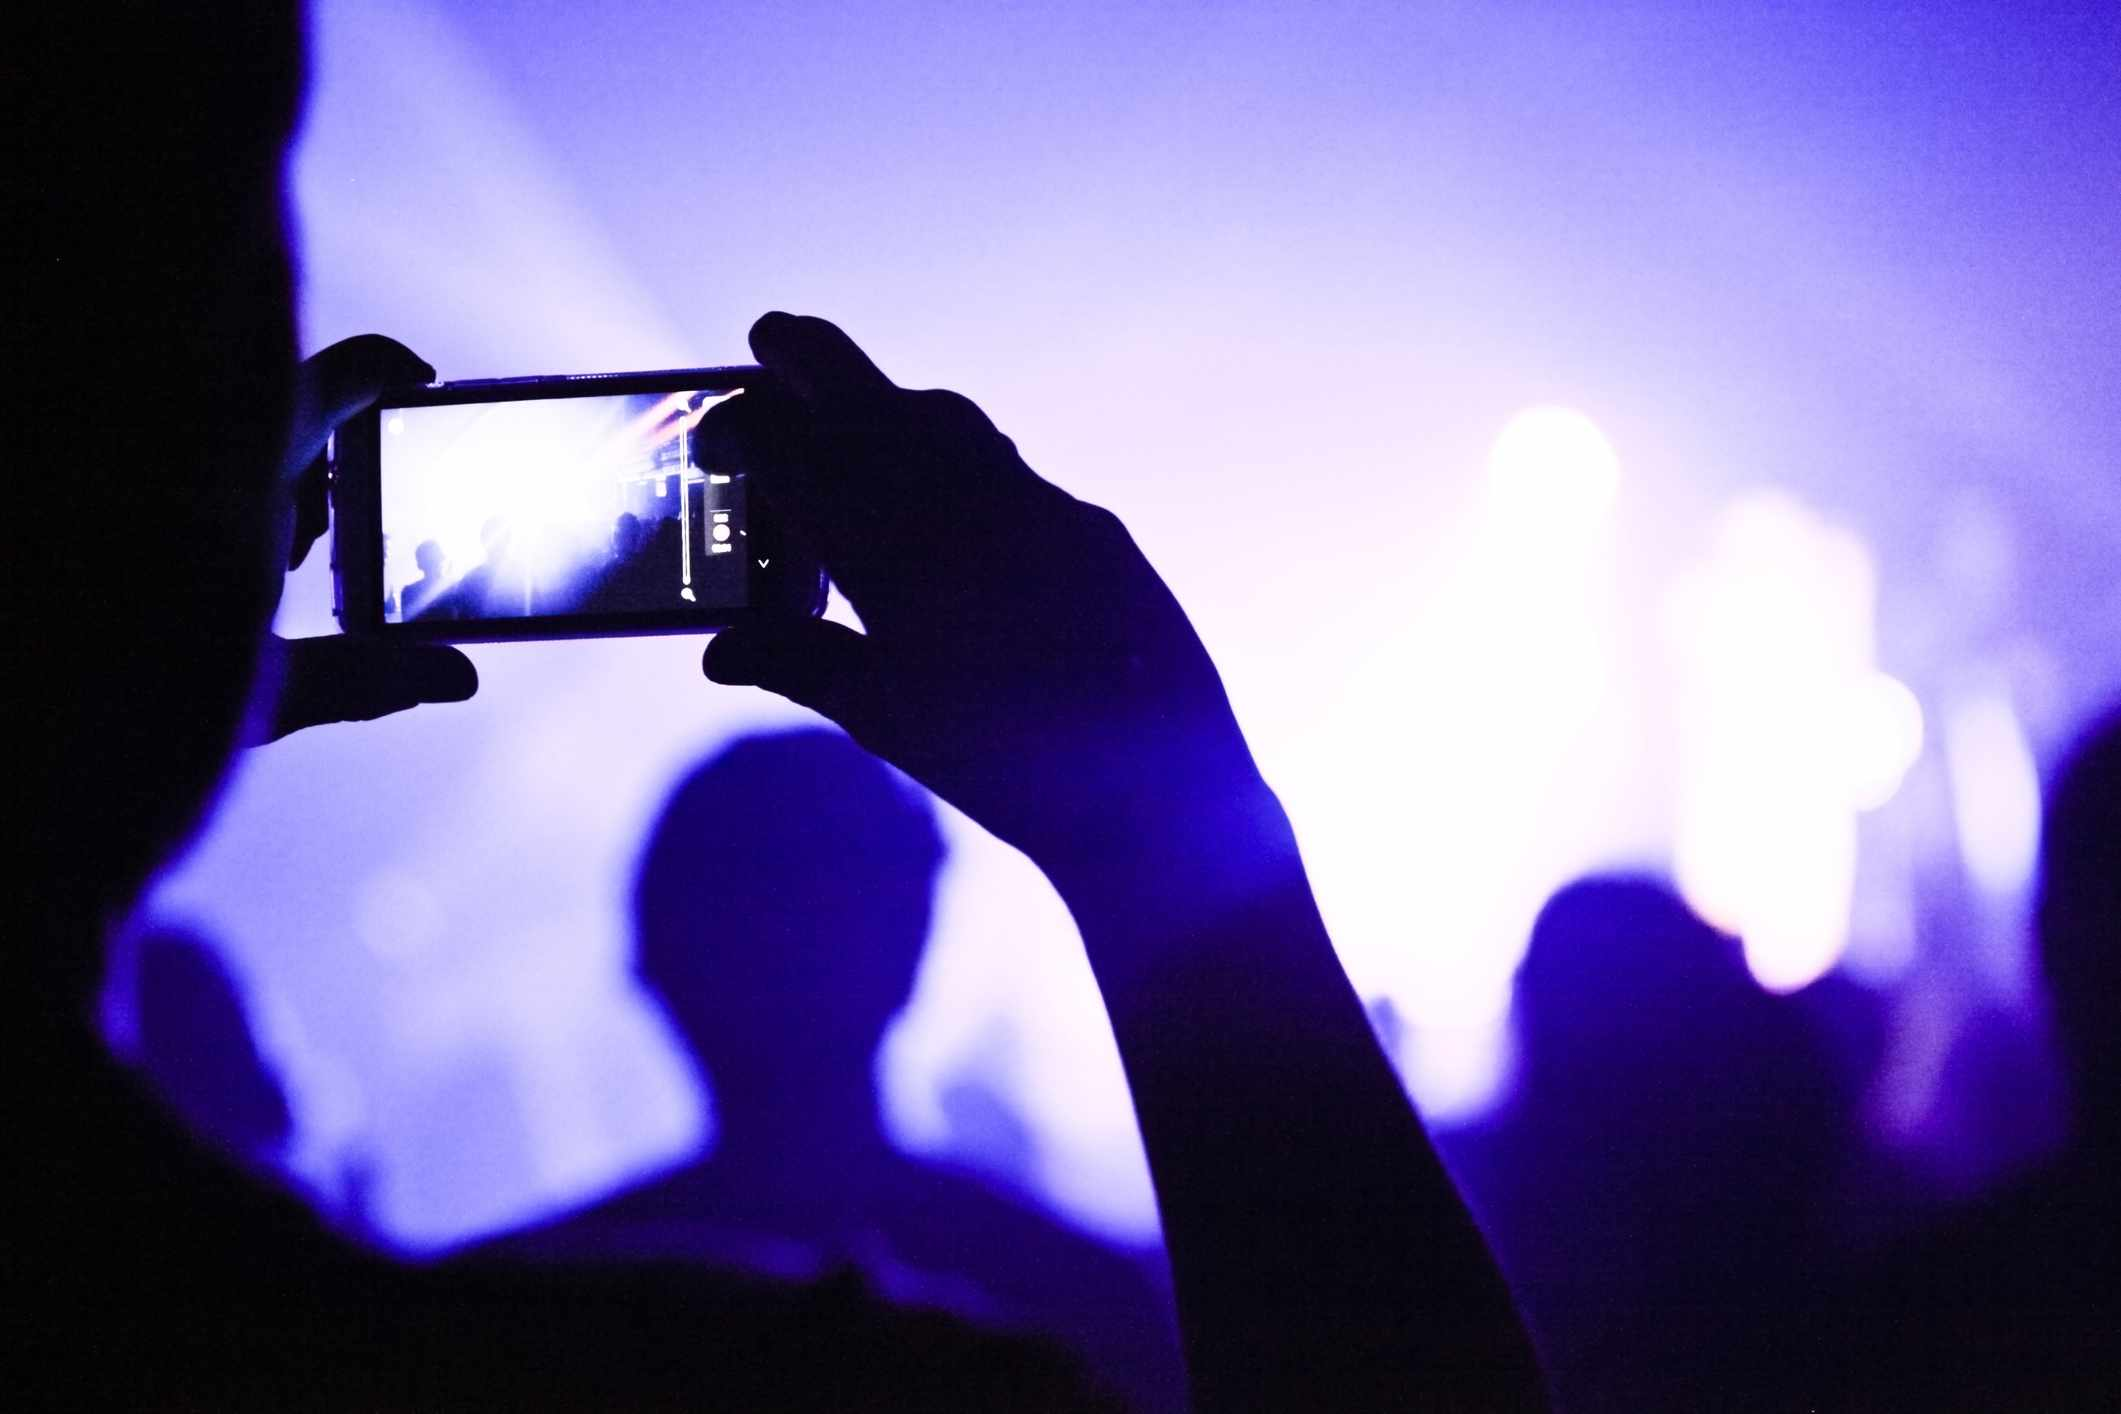 Does taking pictures help us remember things? © Getty Images